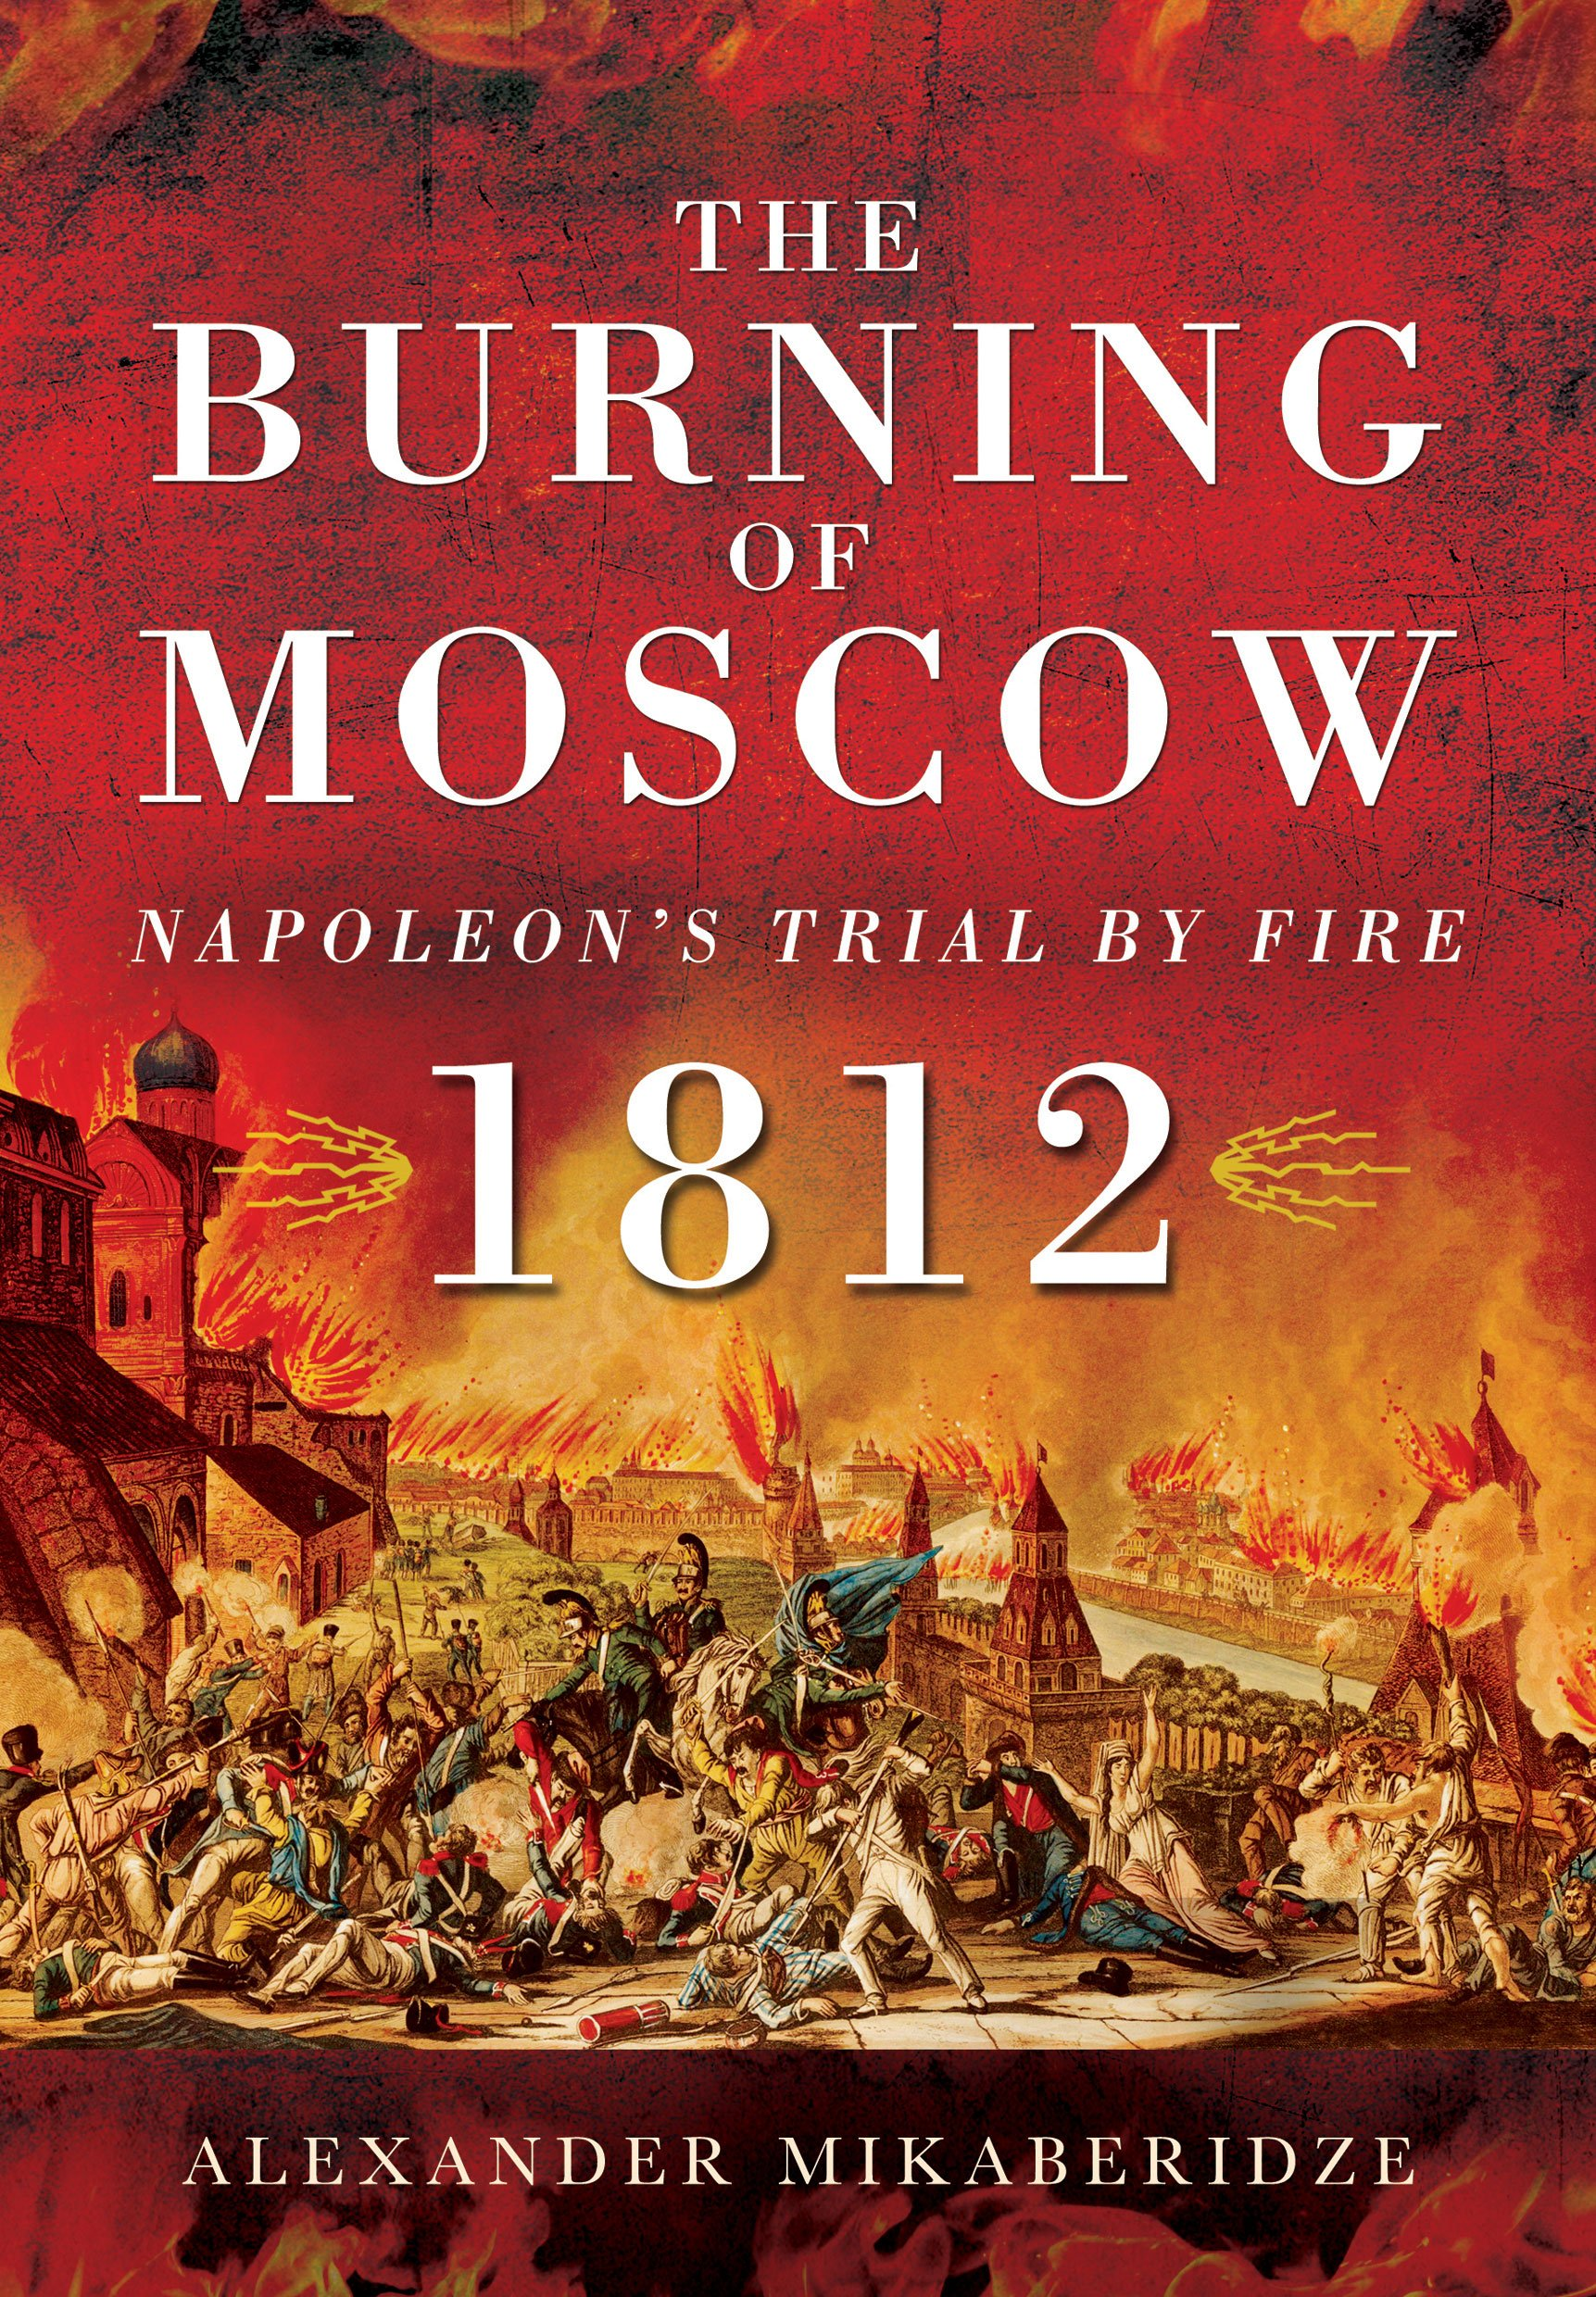 The Burning of Moscow: Napoleon's Trial by Fire 1812: Amazon.co.uk:  Alexander Mikaberidze: 9781781593523: Books